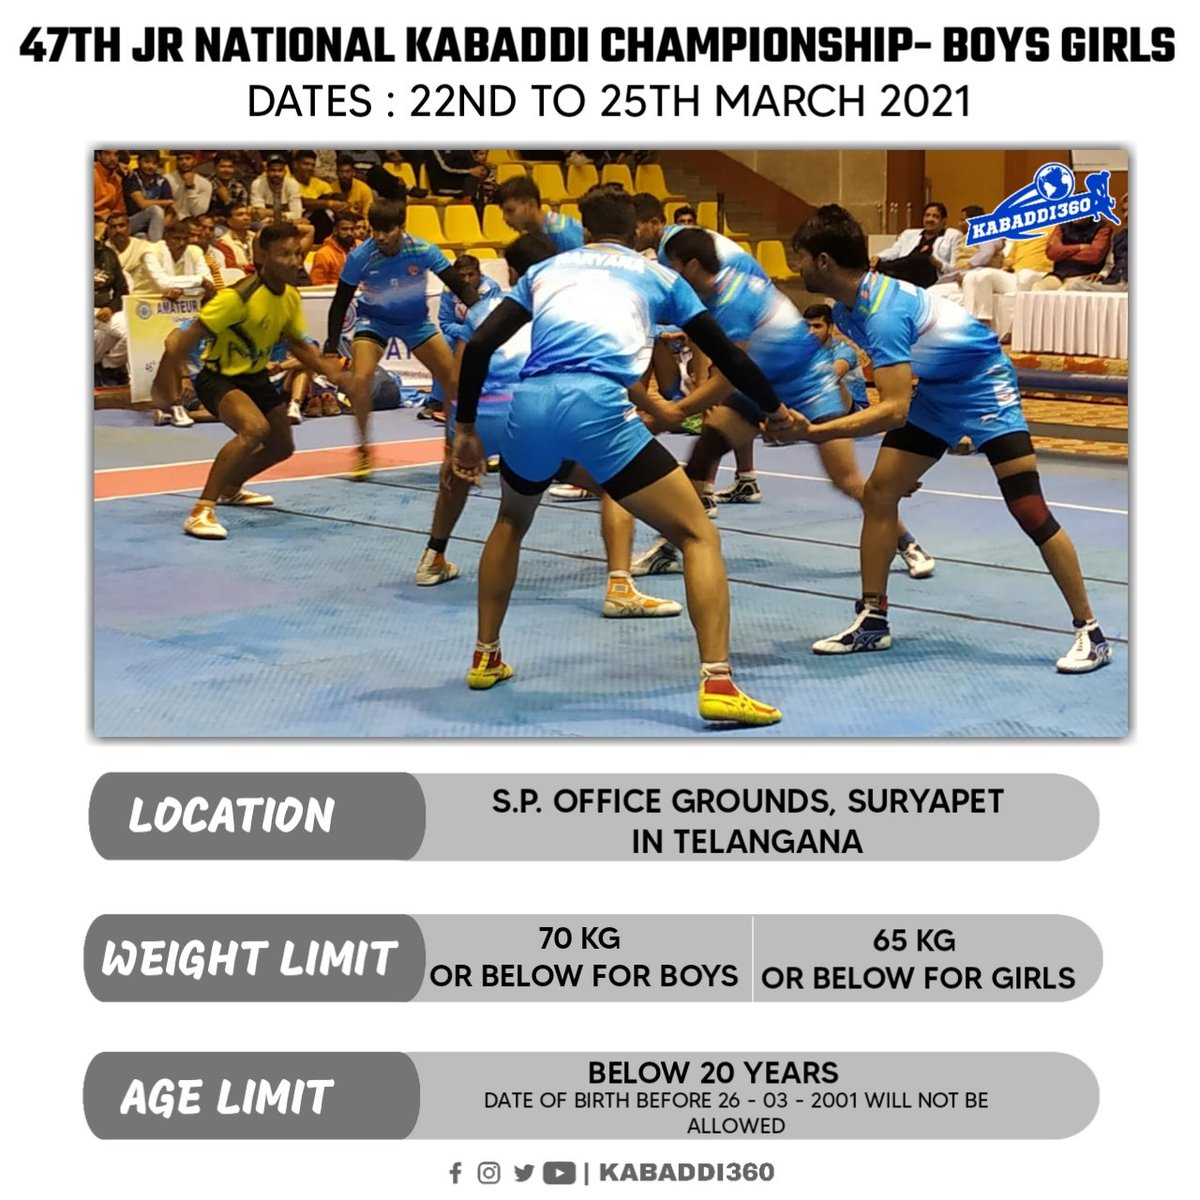 Here is all you need to know about 47th Junior National Kabaddi Championship 📢  #47thJuniorNationalKabaddiChampionship #Kabaddi360 #Kabaddi